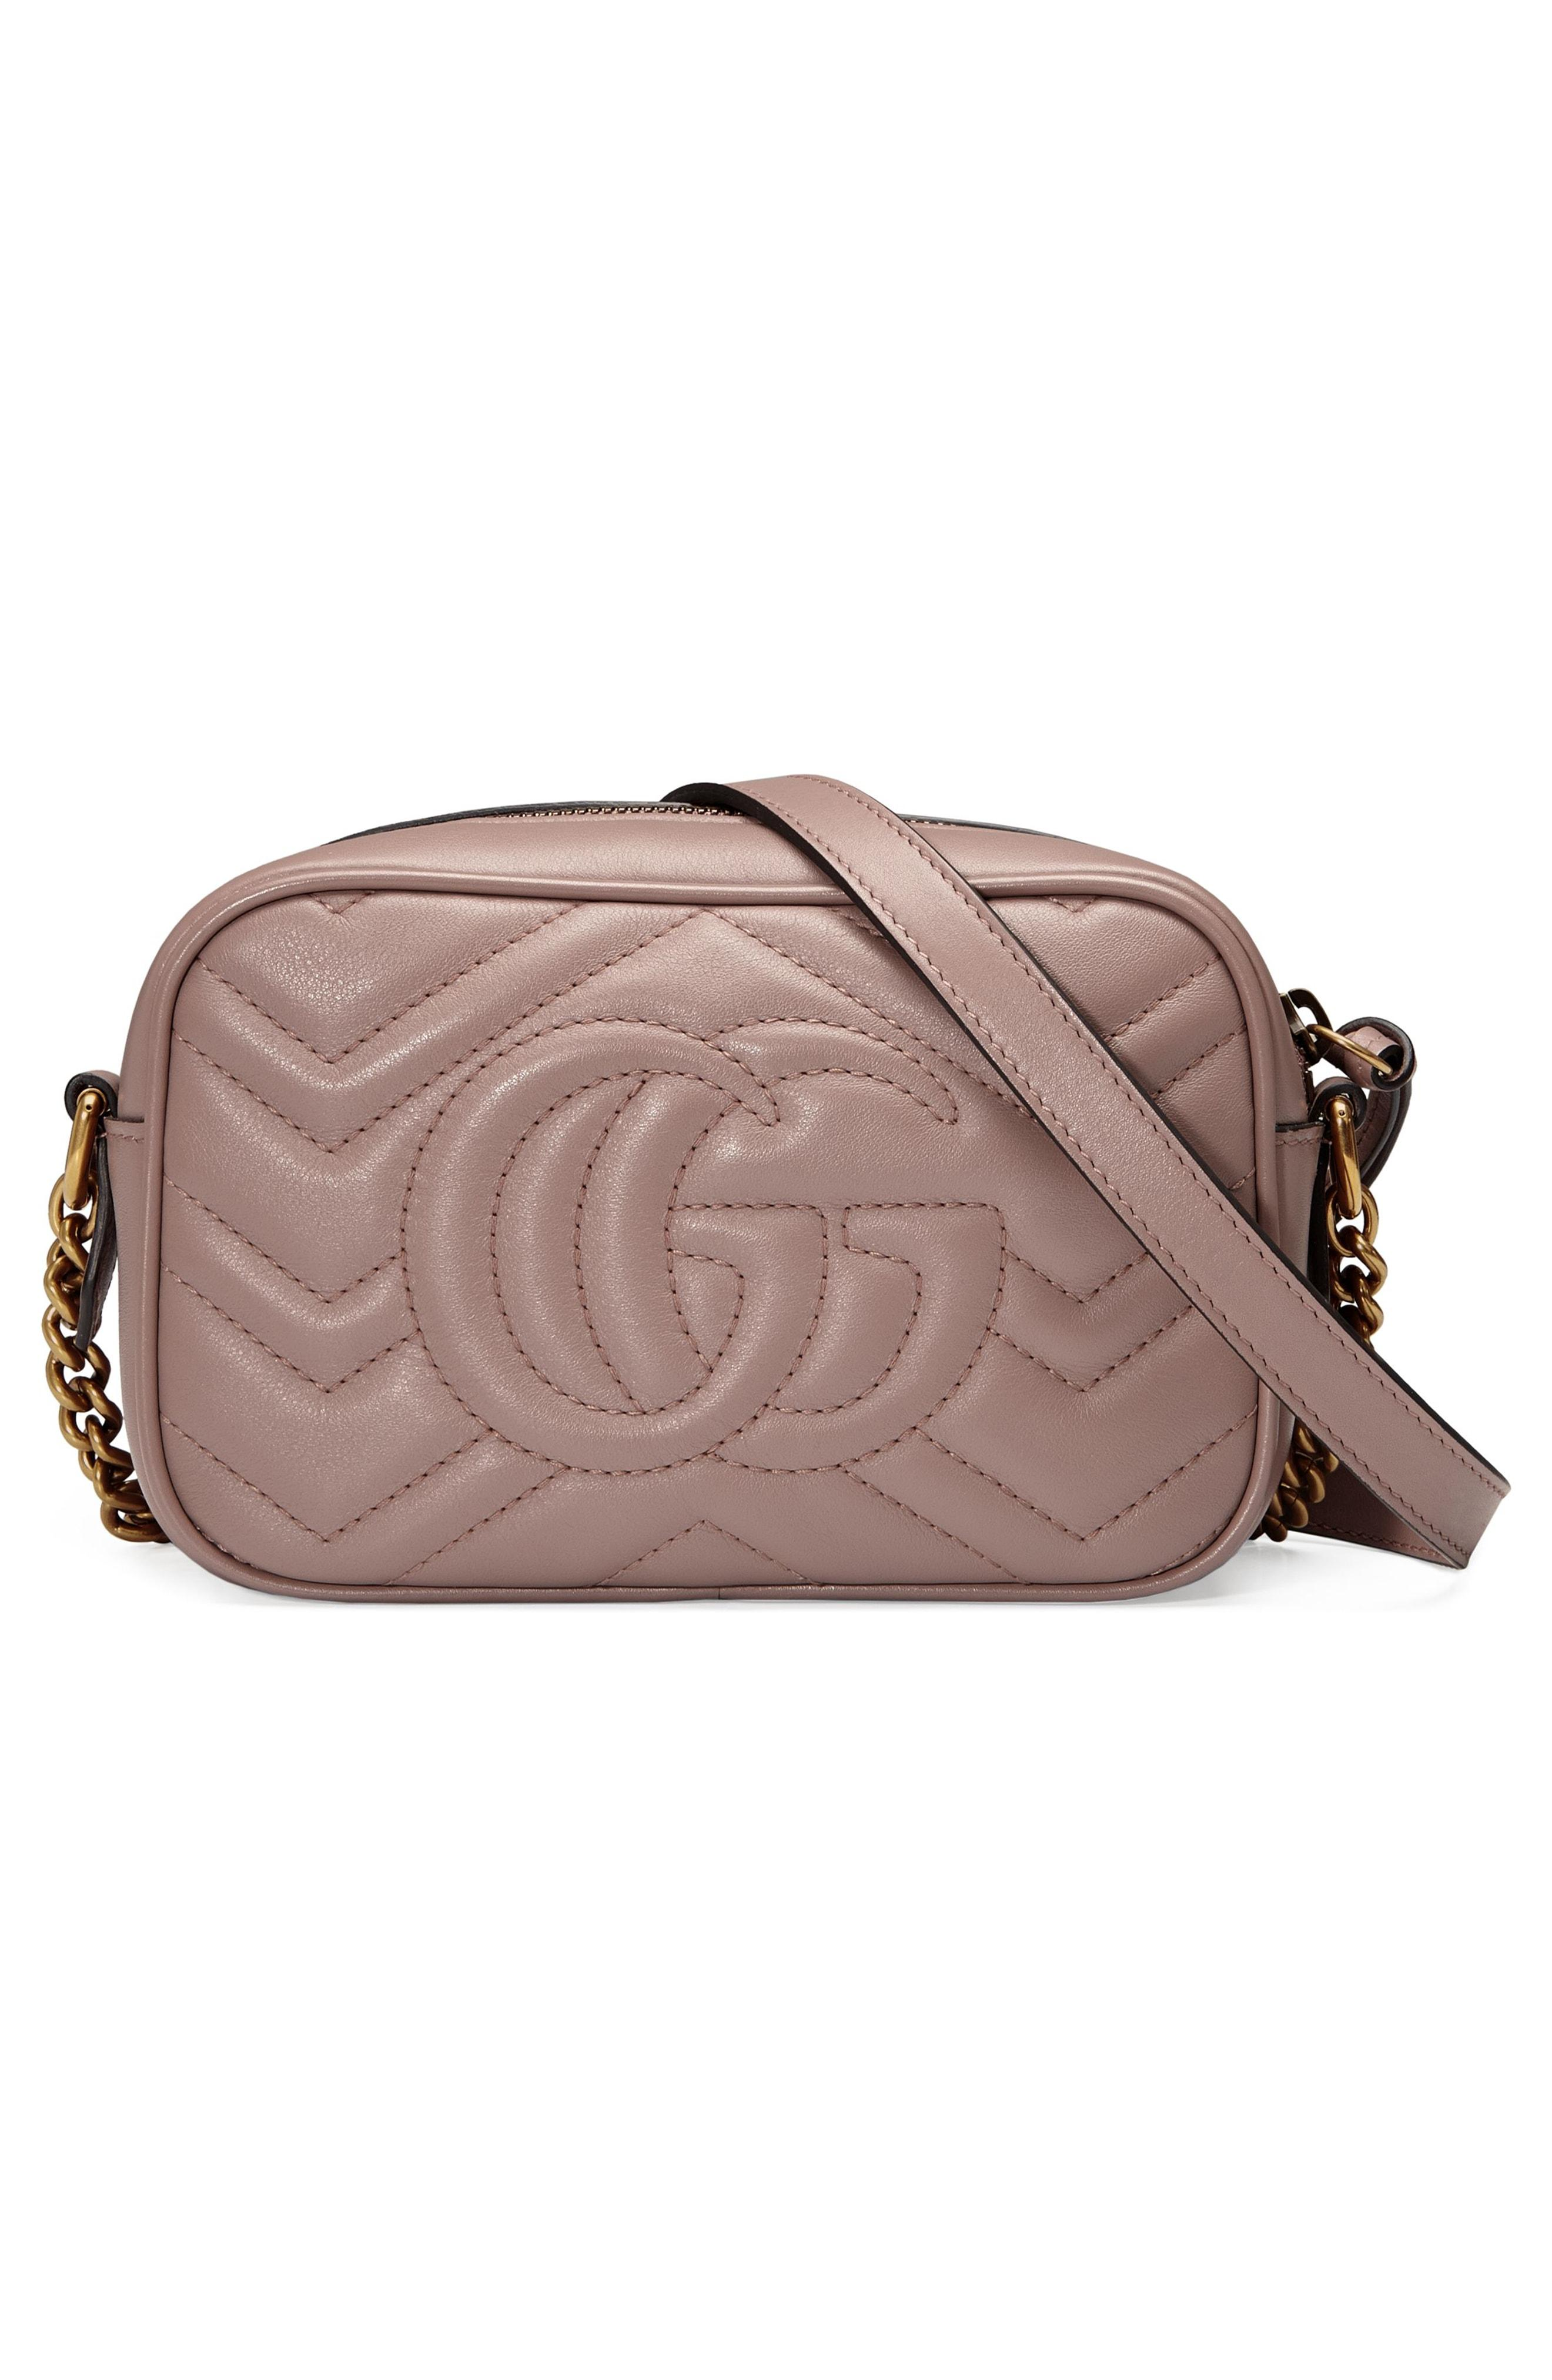 88168f04a88b5f Gucci Small Gg Marmont 2.0 MatelassÉ Leather Camera Bag In Nude ...